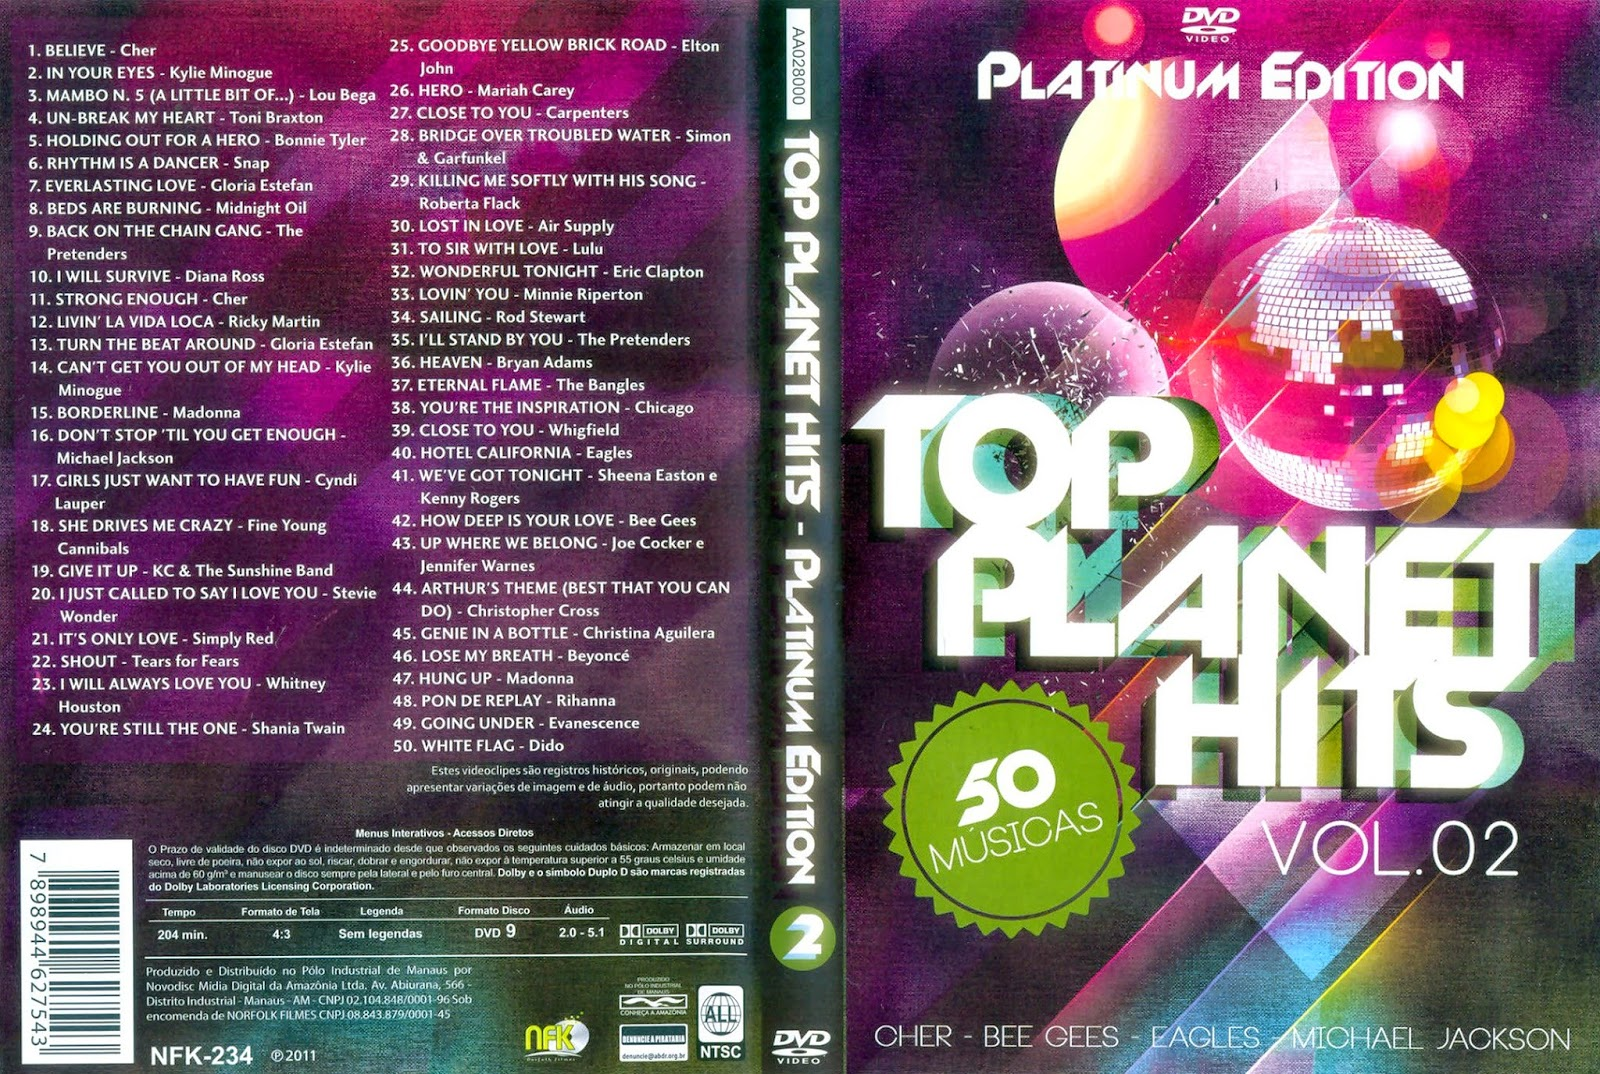 Baixar Top Planet Hits Platinum Edition Vol. 02 DVD-R f3eowqf